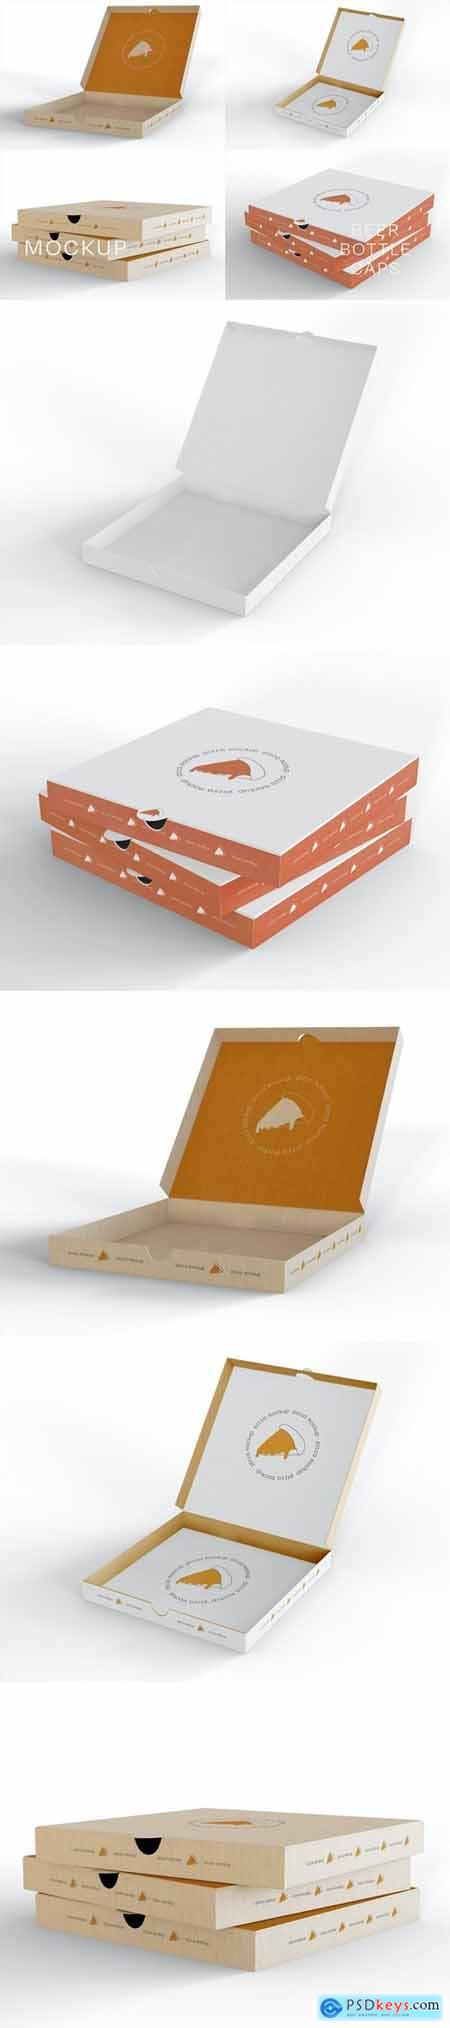 Stack of Pizza Boxes Mockup